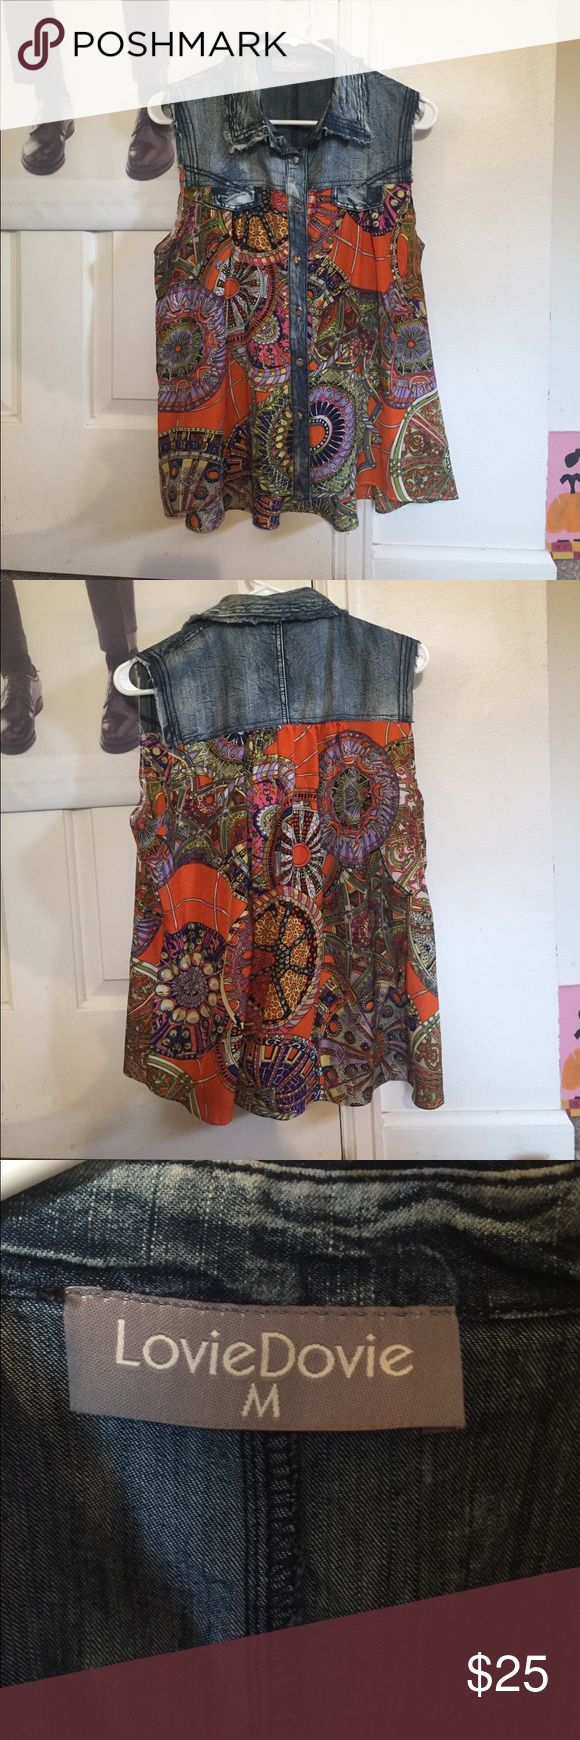 Jean and patterned flowy tank Cute button up flowy tank perfect for hanging in the sun this summer! Worn once! Lovie Dovie Tops Tank Tops